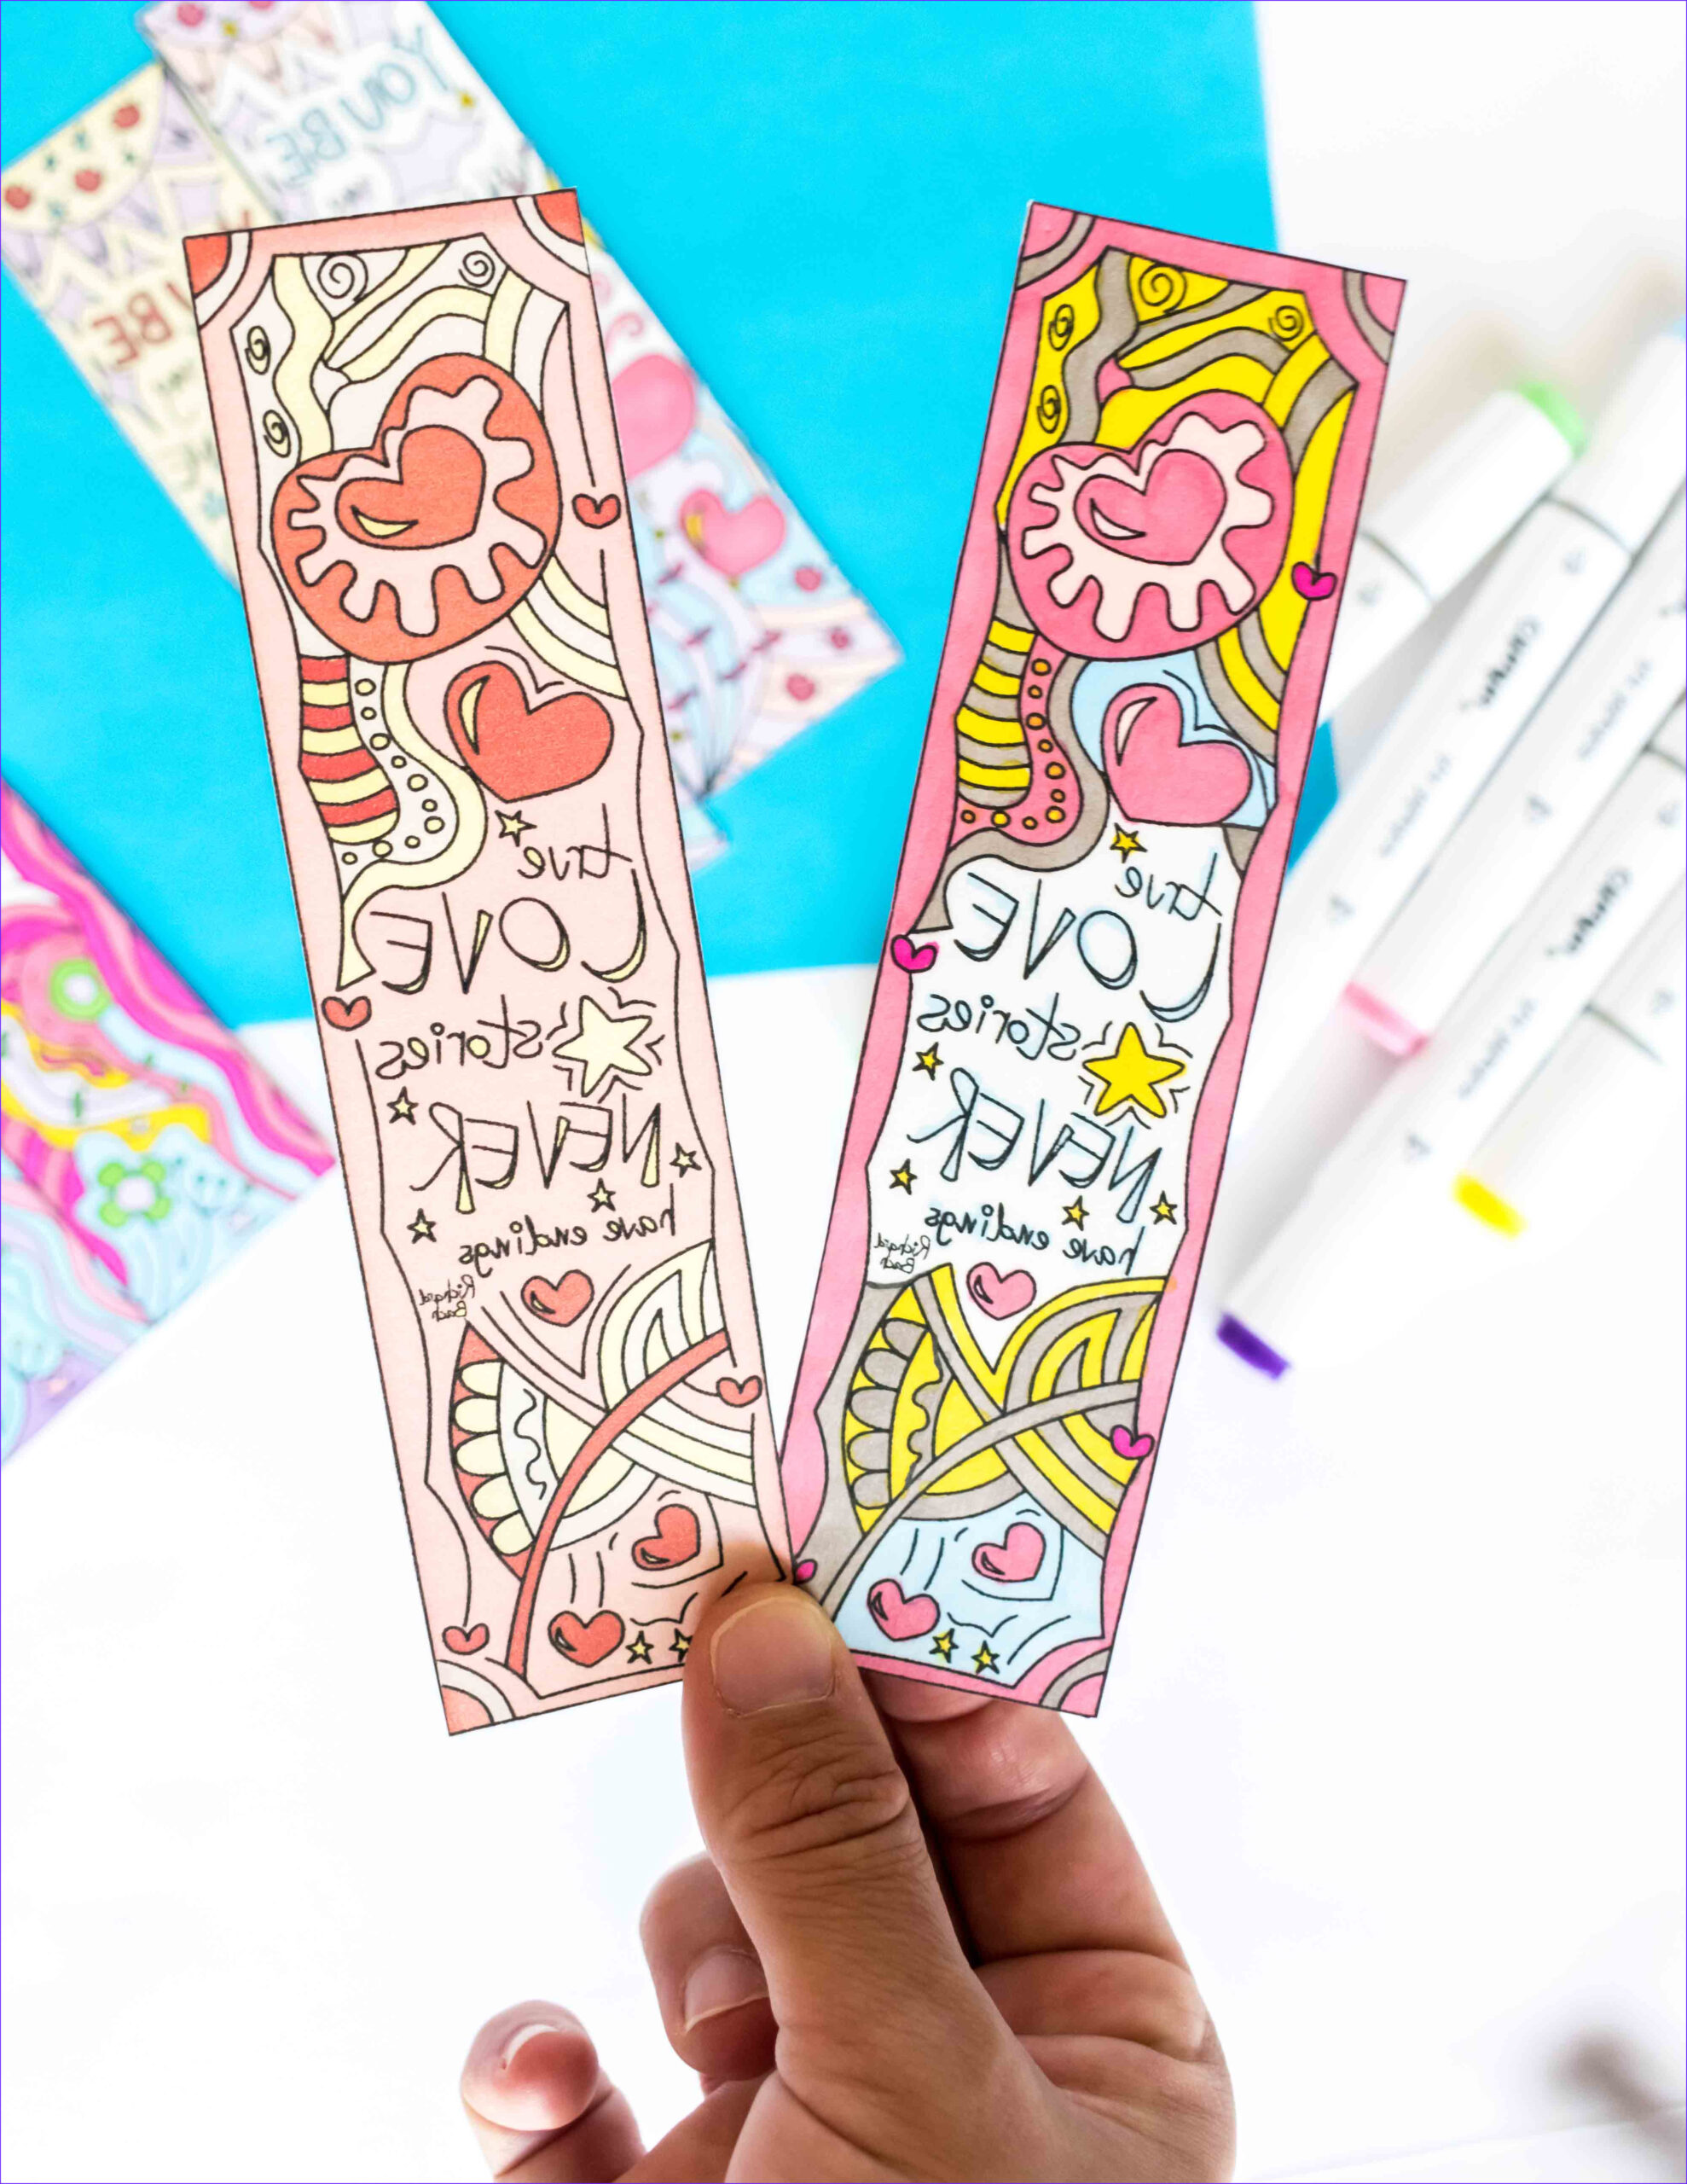 Free Coloring Bookmarks New Images Coloring Valentine's Day Bookmarks Free Printable